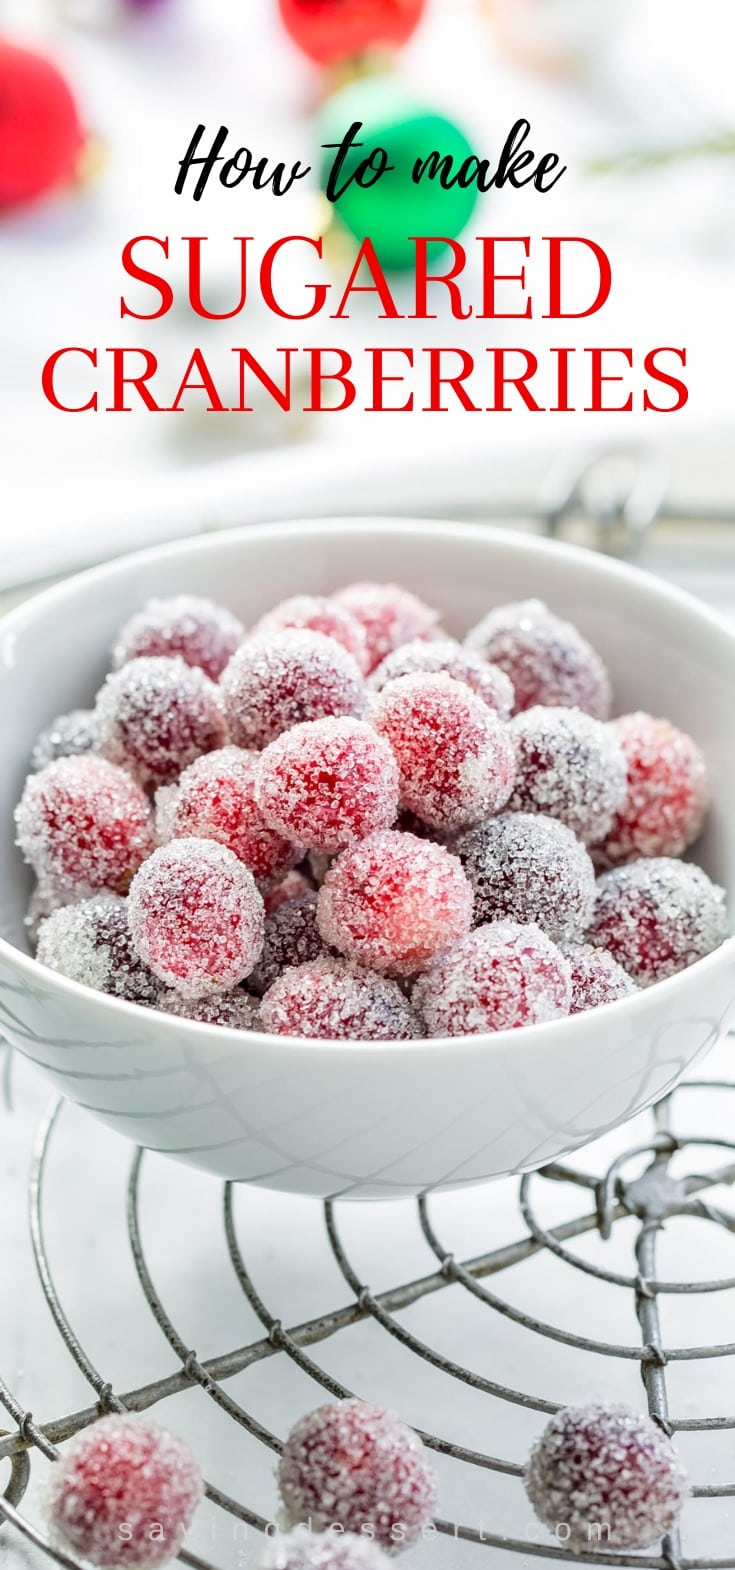 A bowl of sugared cranberries used for garnishing baked goods